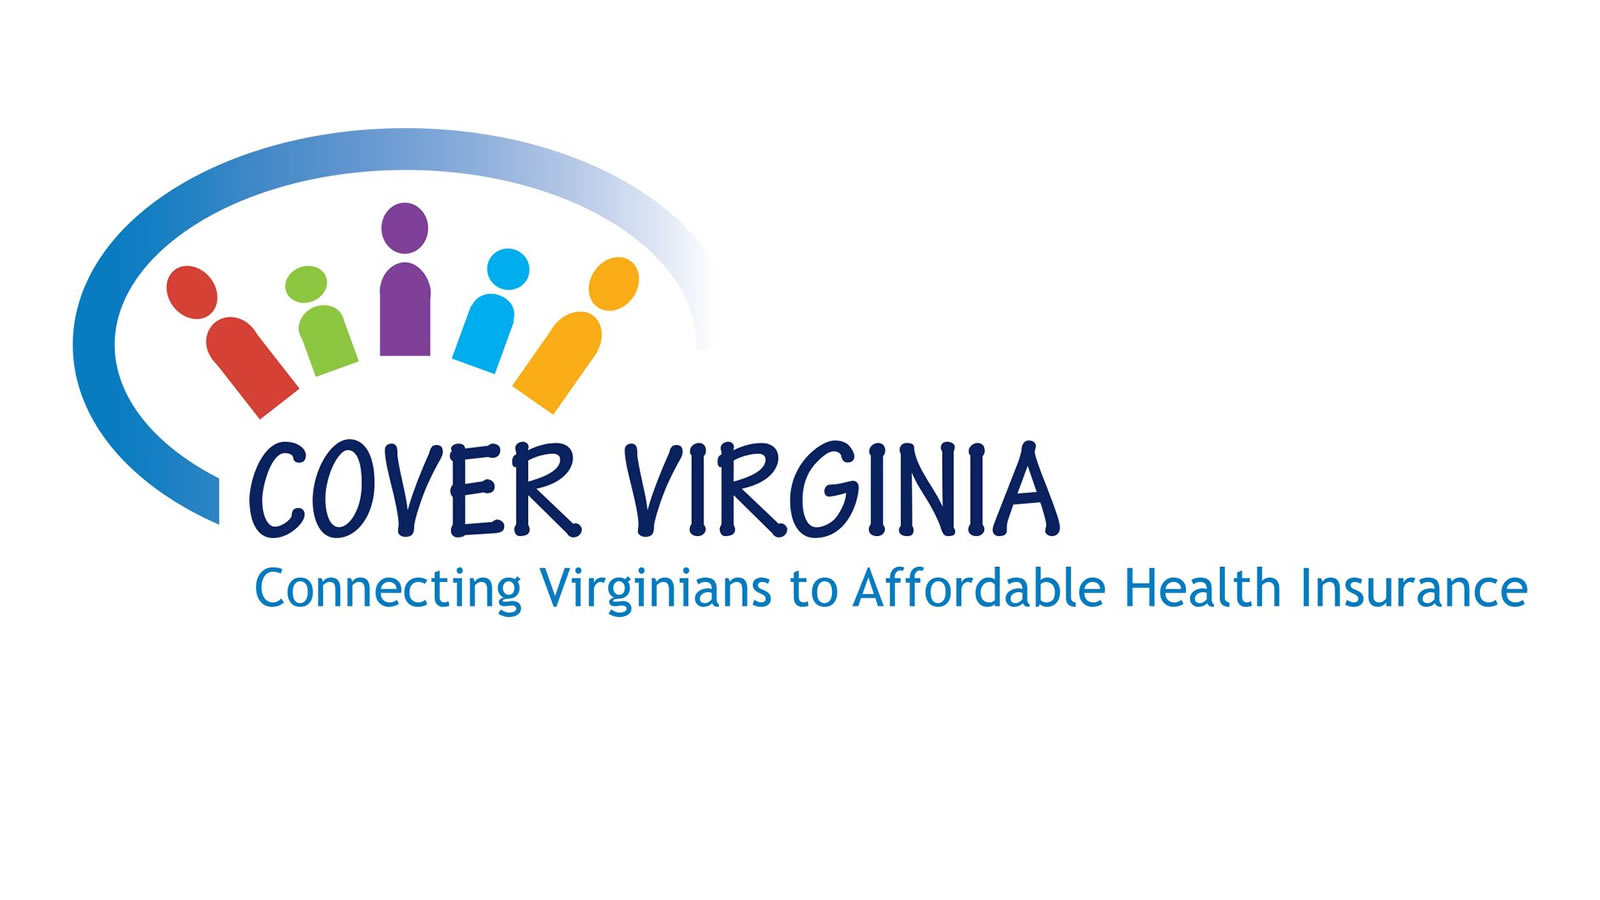 Cover Virginia logo